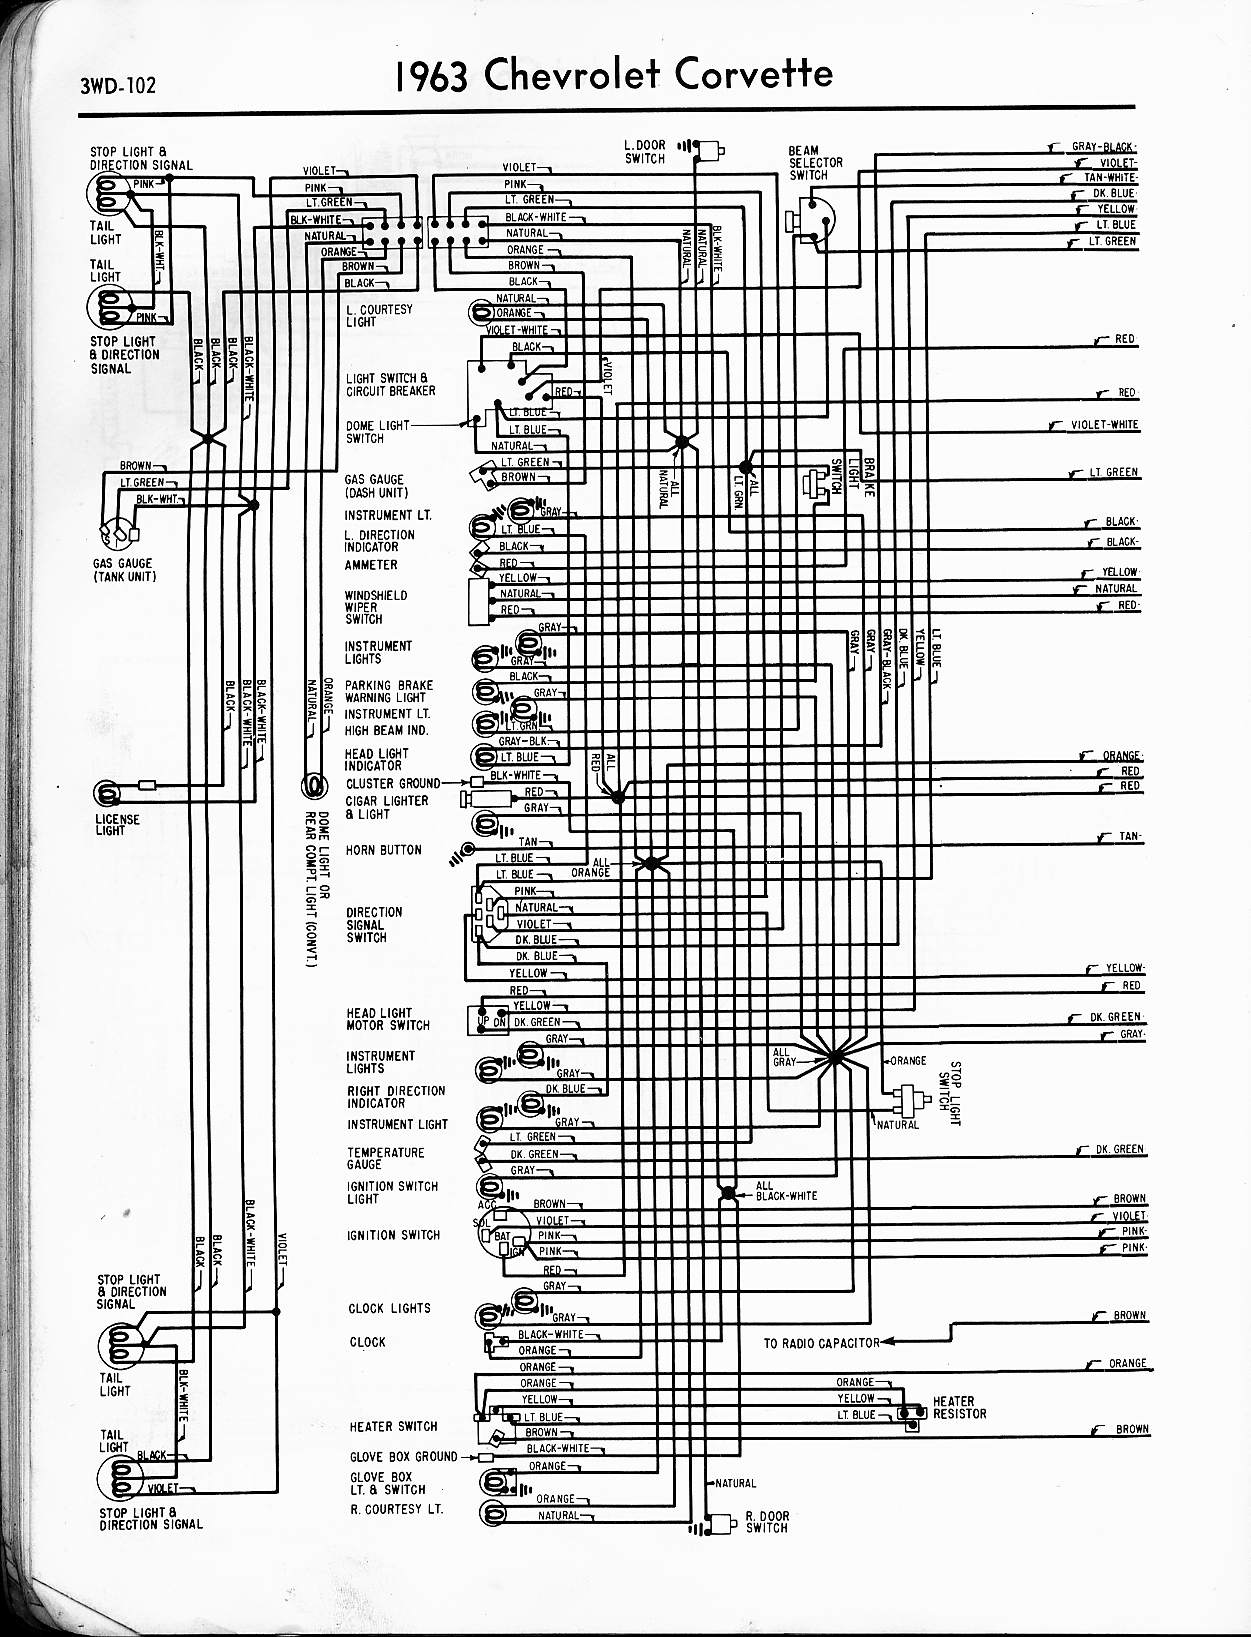 MWireChev63_3WD 102 57 65 chevy wiring diagrams 66 Corvette at gsmx.co